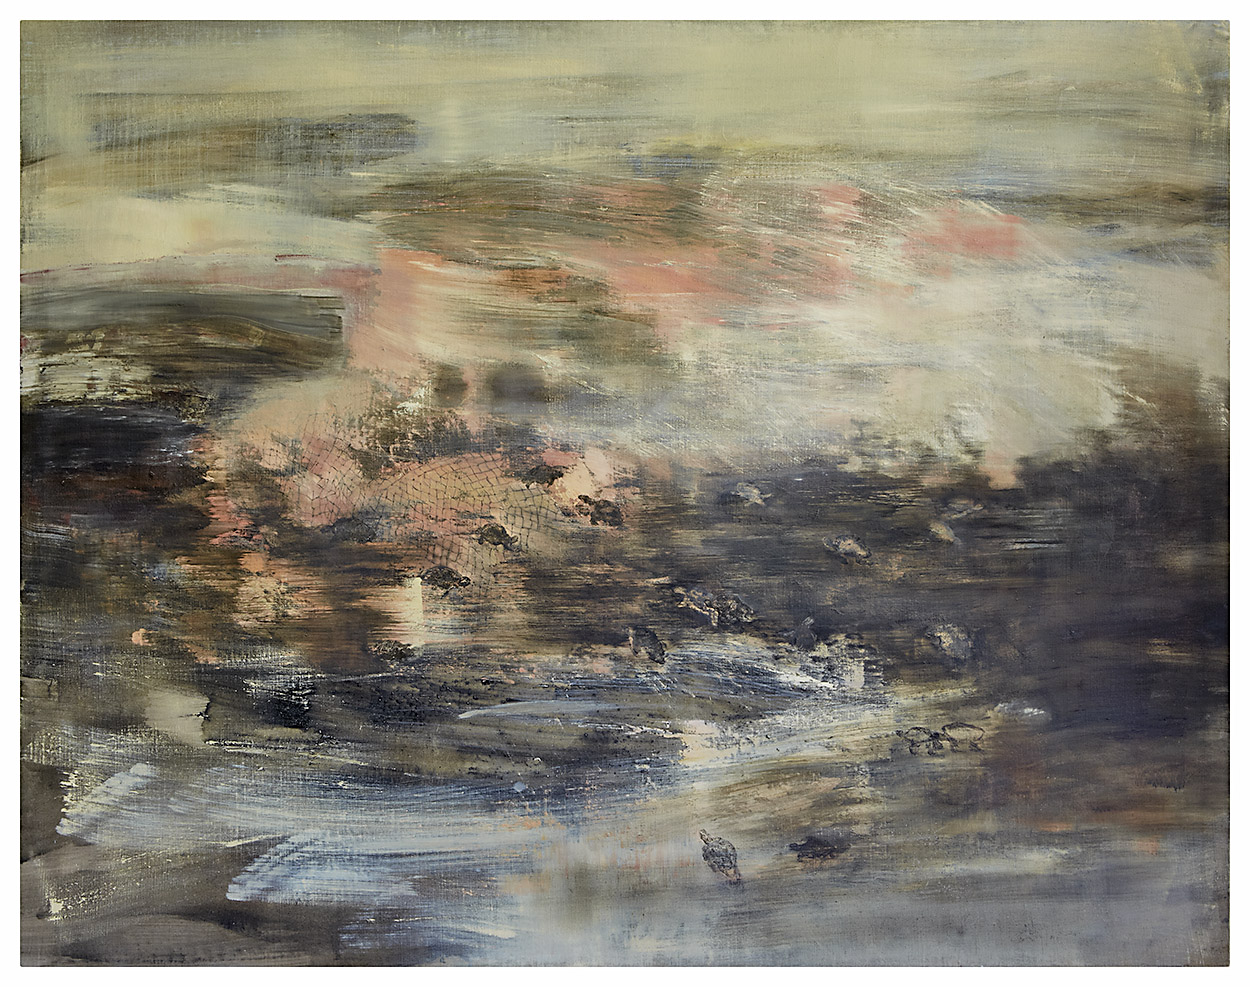 Millenium spawning at birthplace   Mixed media on canvas. 170 x 130 cm.